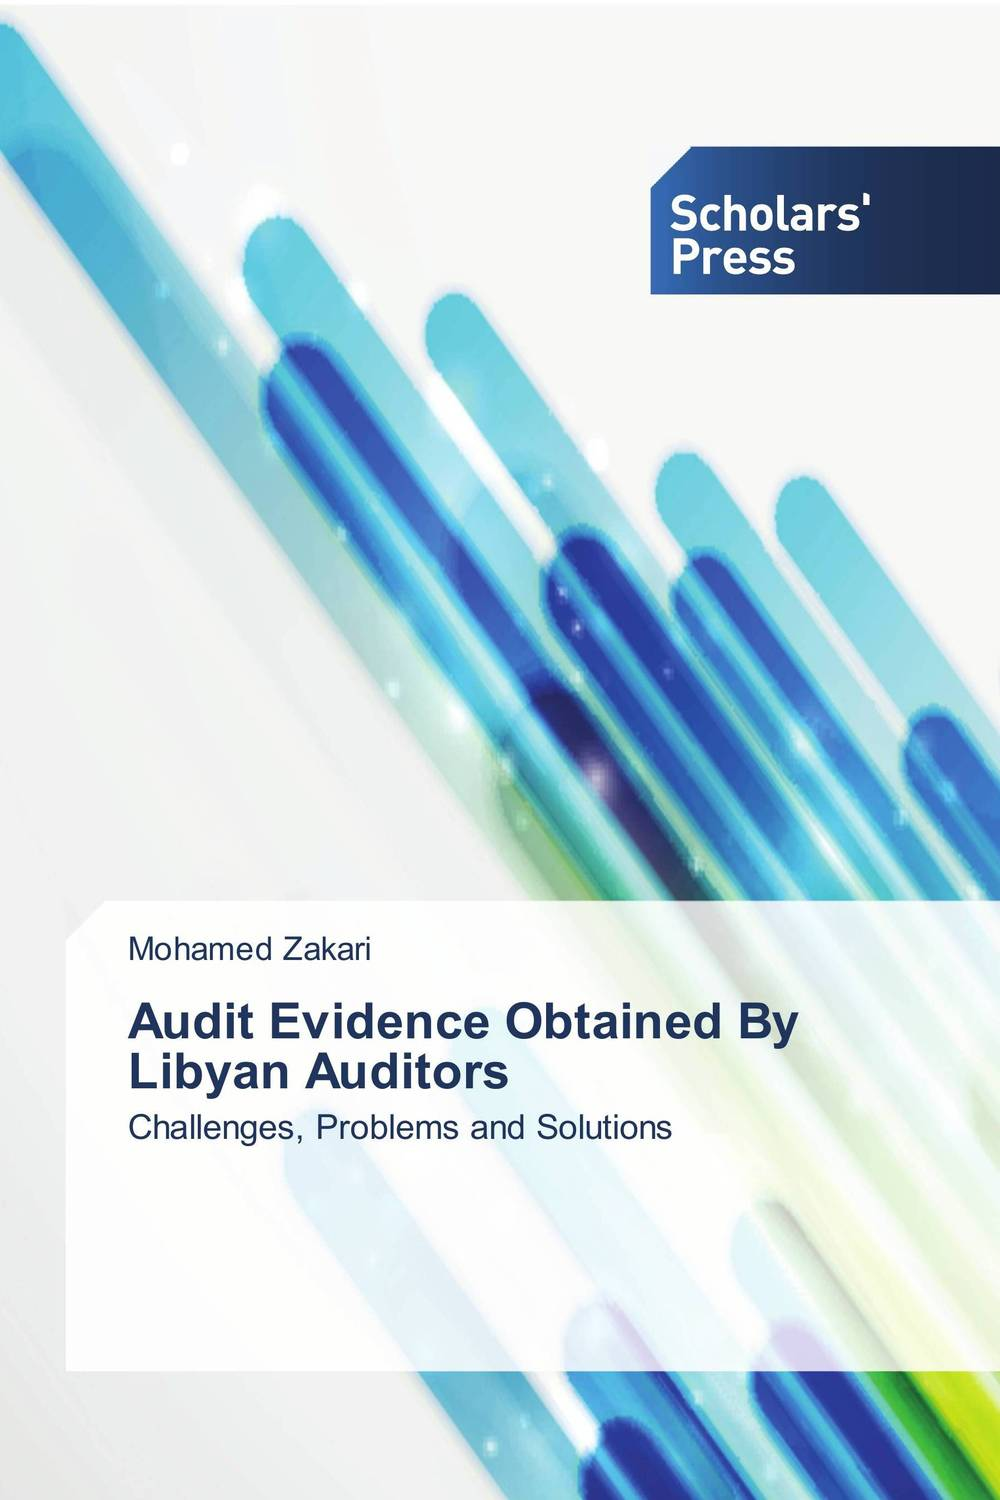 Audit Evidence Obtained By Libyan Auditors